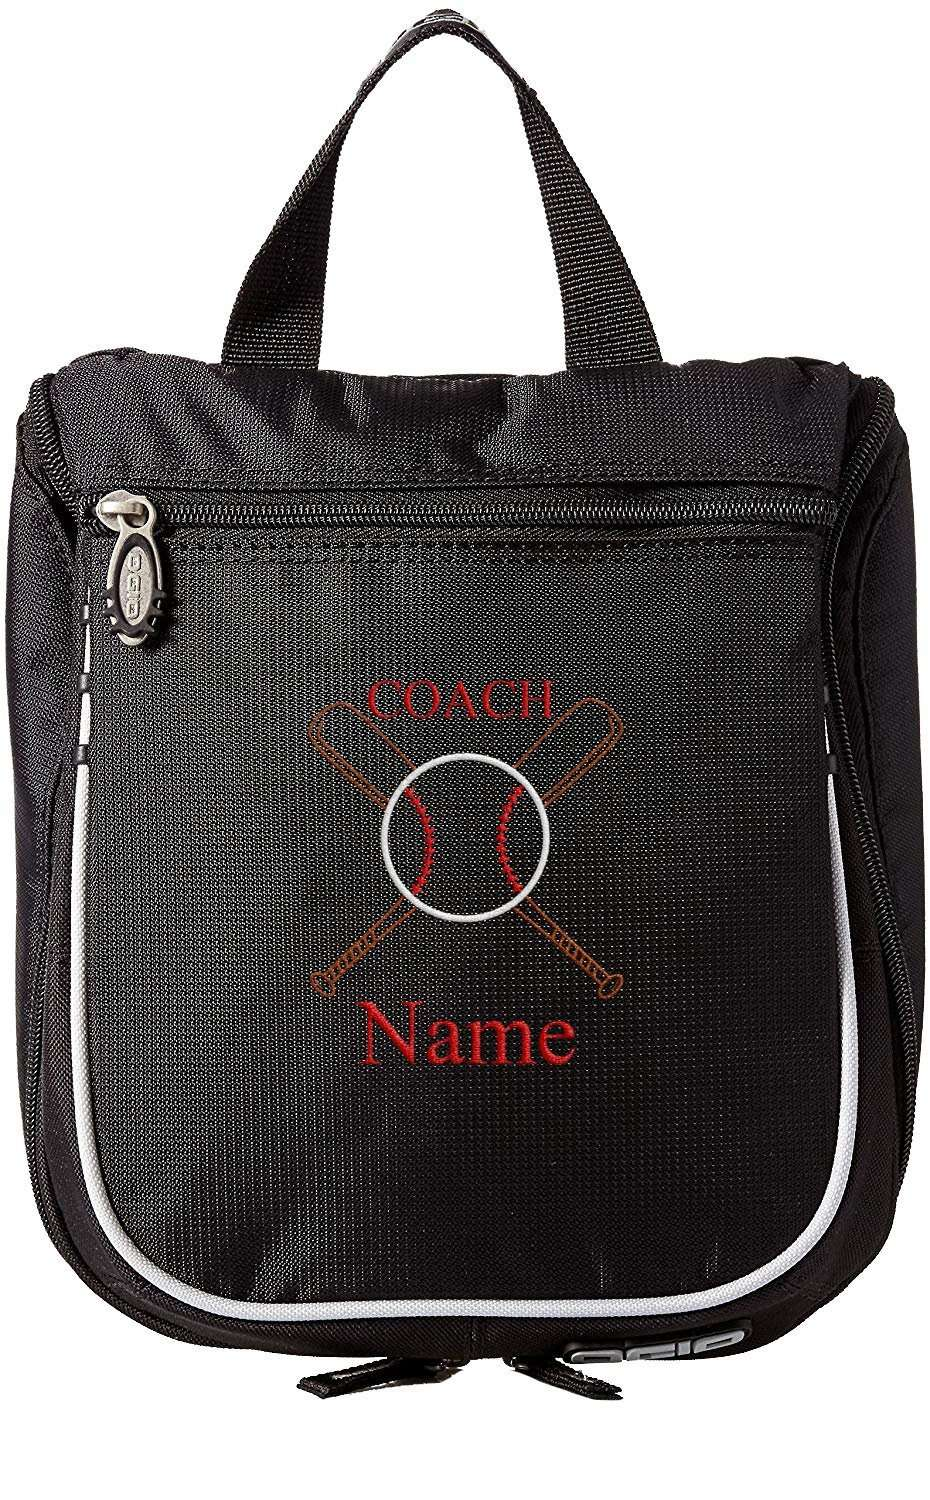 Accessory - Baseball Toiletry Bag, Personalized Men's Shaving Kit, Hanging Travel Case